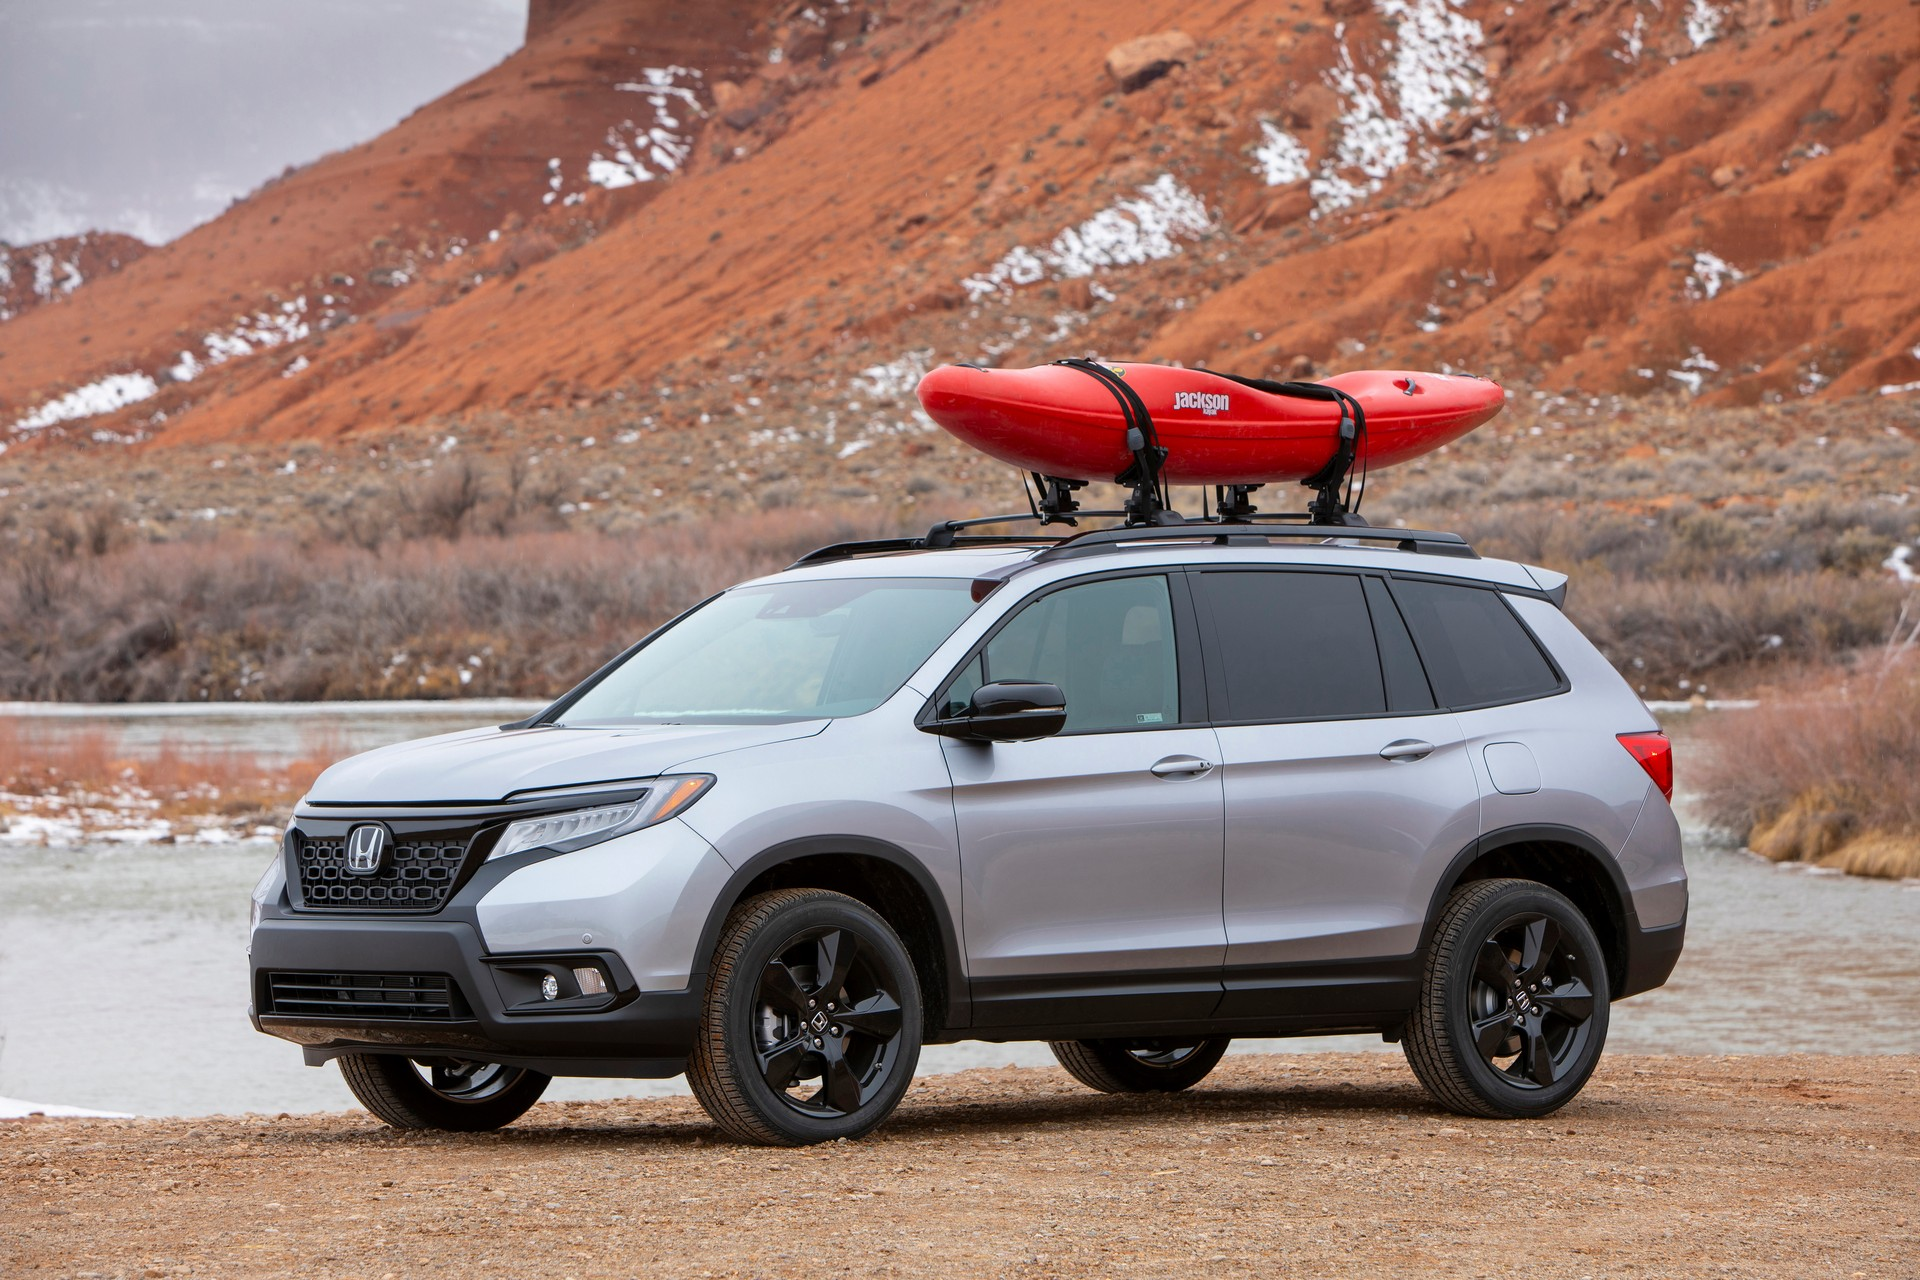 2021-honda-passport-9.jpg